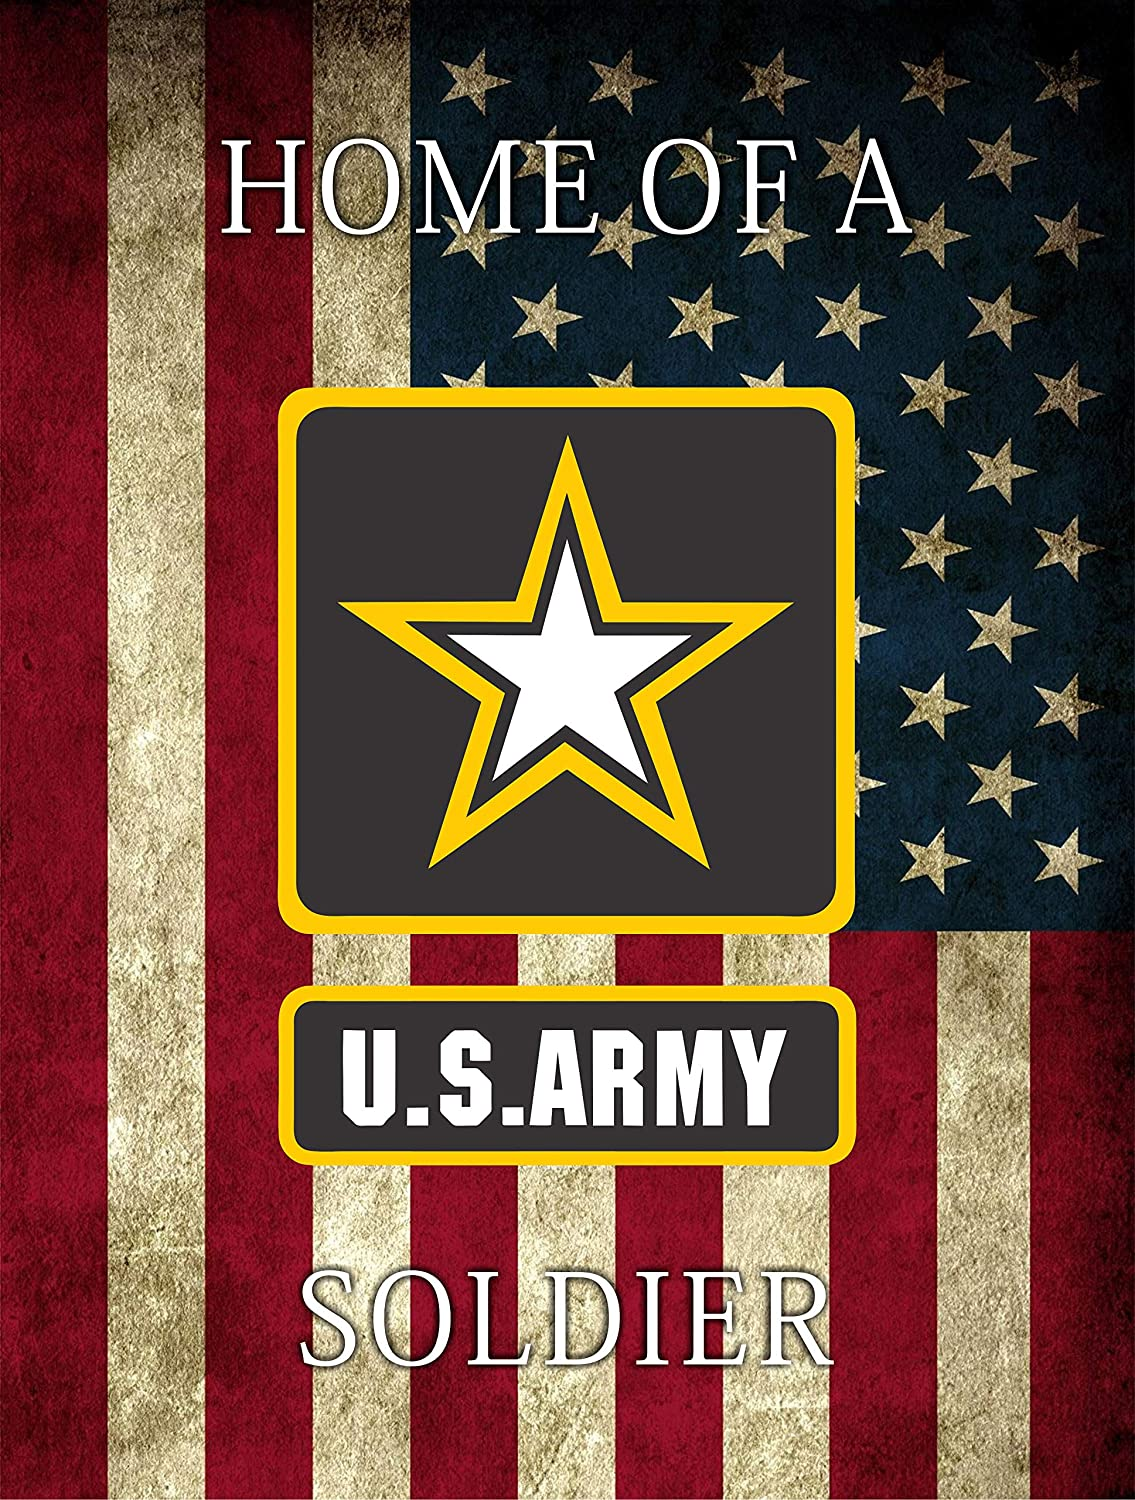 H2 Studio Home of US Army Flag Decal, US Flag Sticker for Door, Window and Gate of U.S. Soldiers' House, Decal to Welcome Home Banner Military, Army Birthday Party Supplies, Pack 2